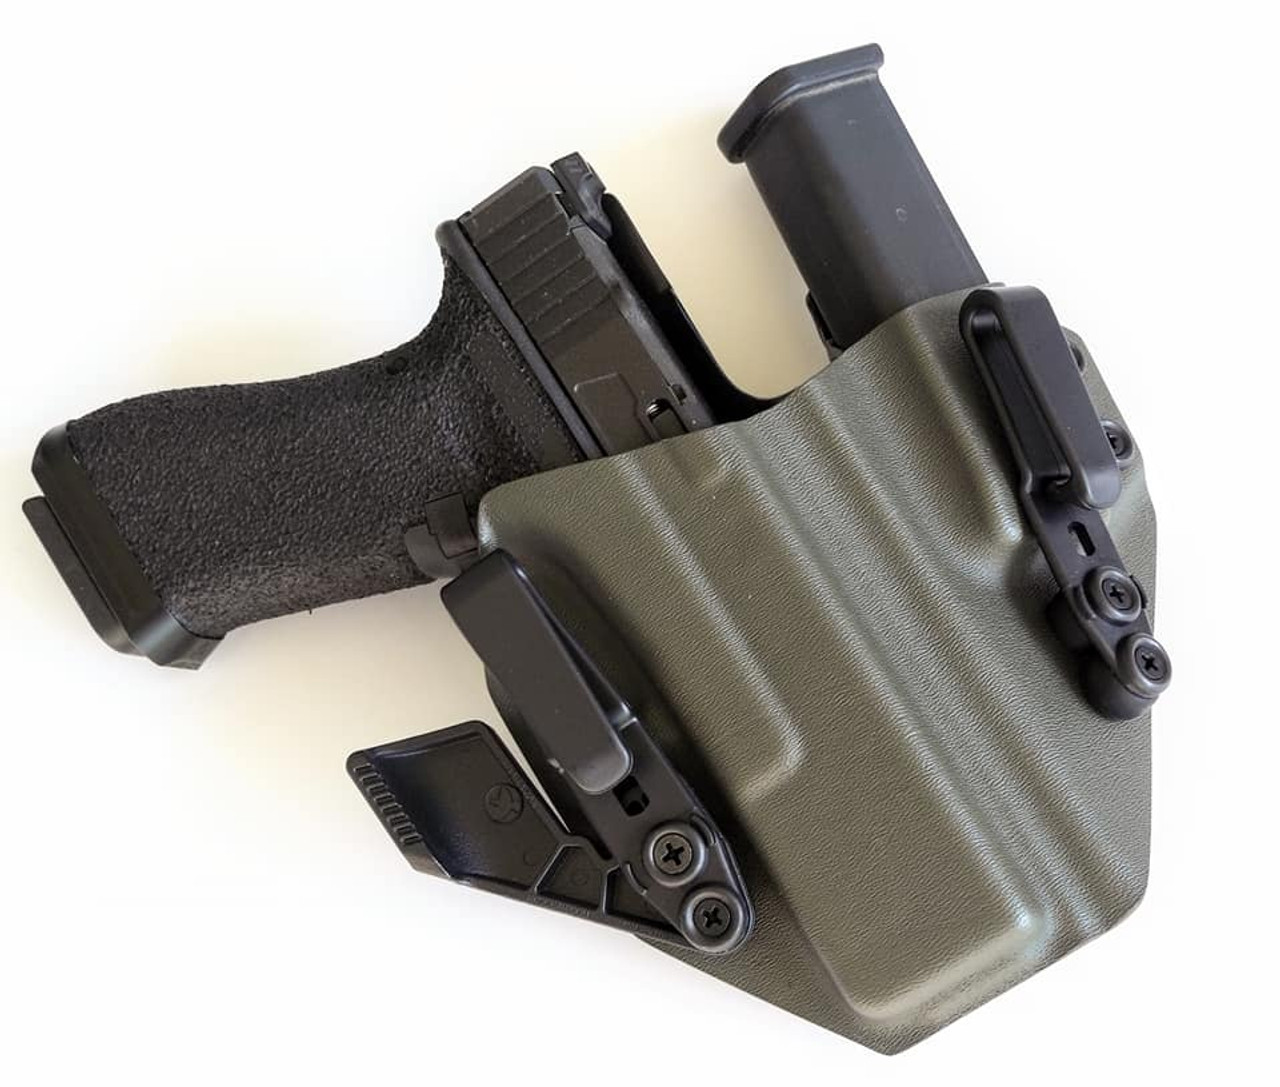 Glock 17 Sidecar Appendix Carry Rig Holster